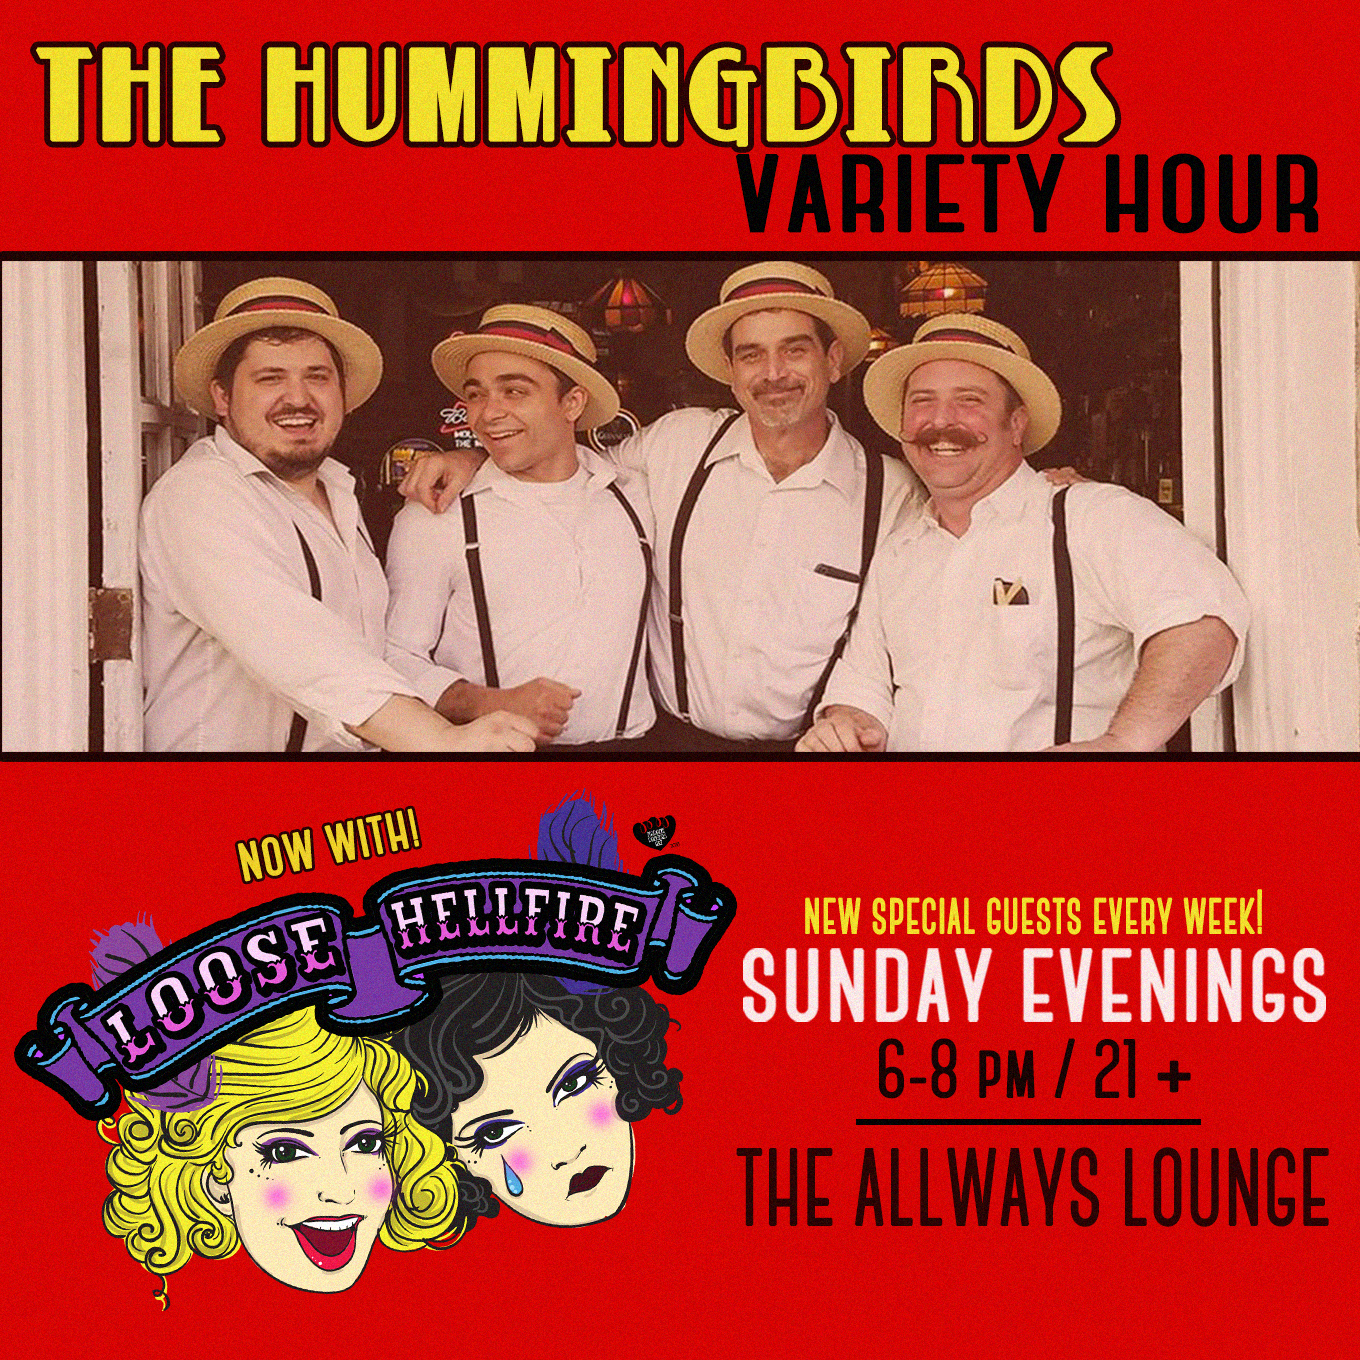 Hummingbirds Variety Hour - Now with Loose Hellfire! -  AllWays Lounge